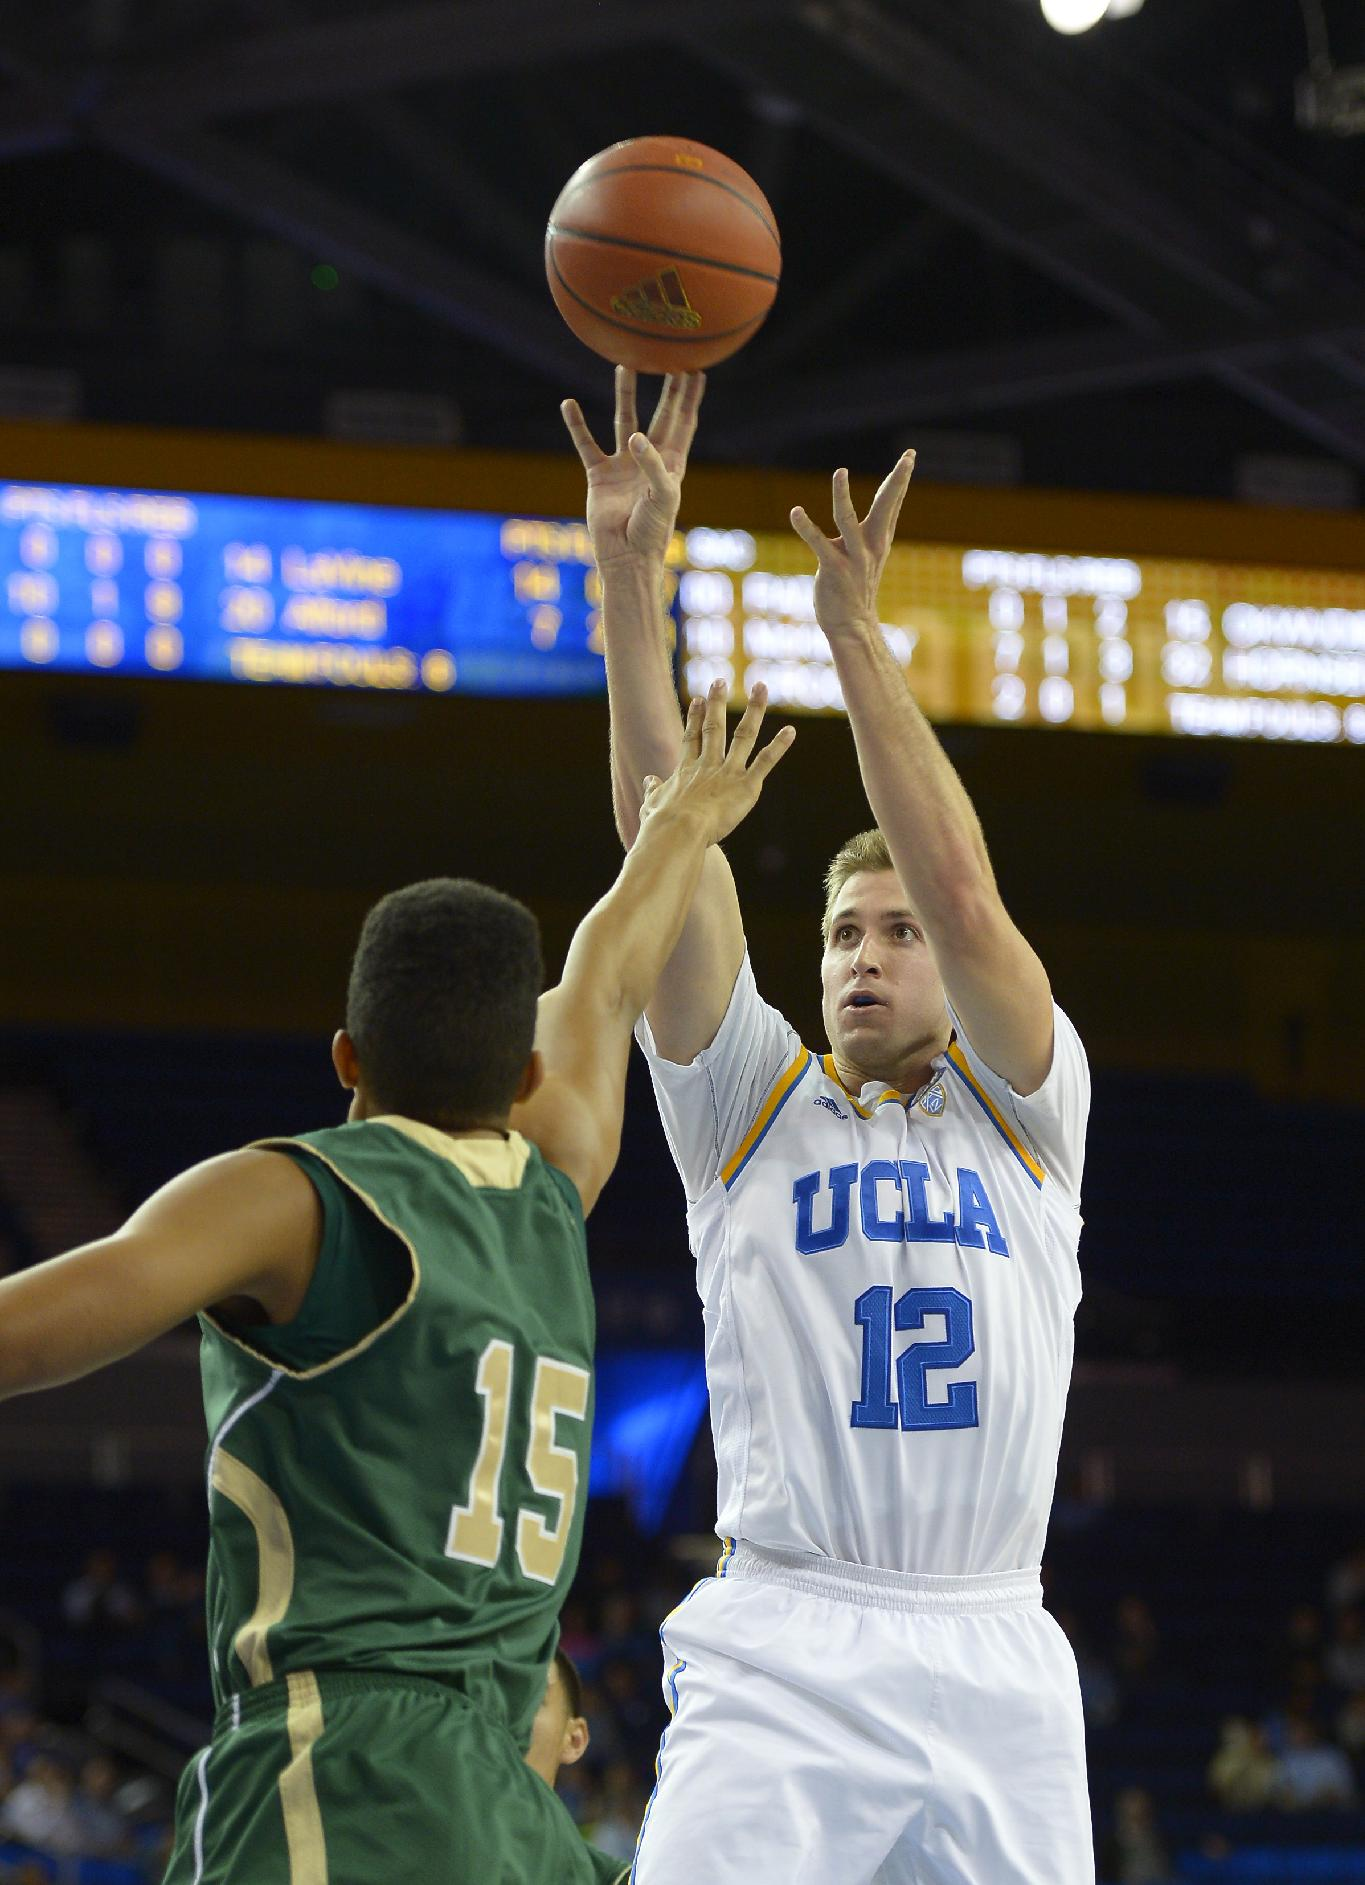 UCLA forward David Wear, right, puts up a shot as Sacramento center Ryan Okwudibonye defends during the second half of an NCAA college basketball game, Monday, Nov. 18, 2013, in Los Angeles